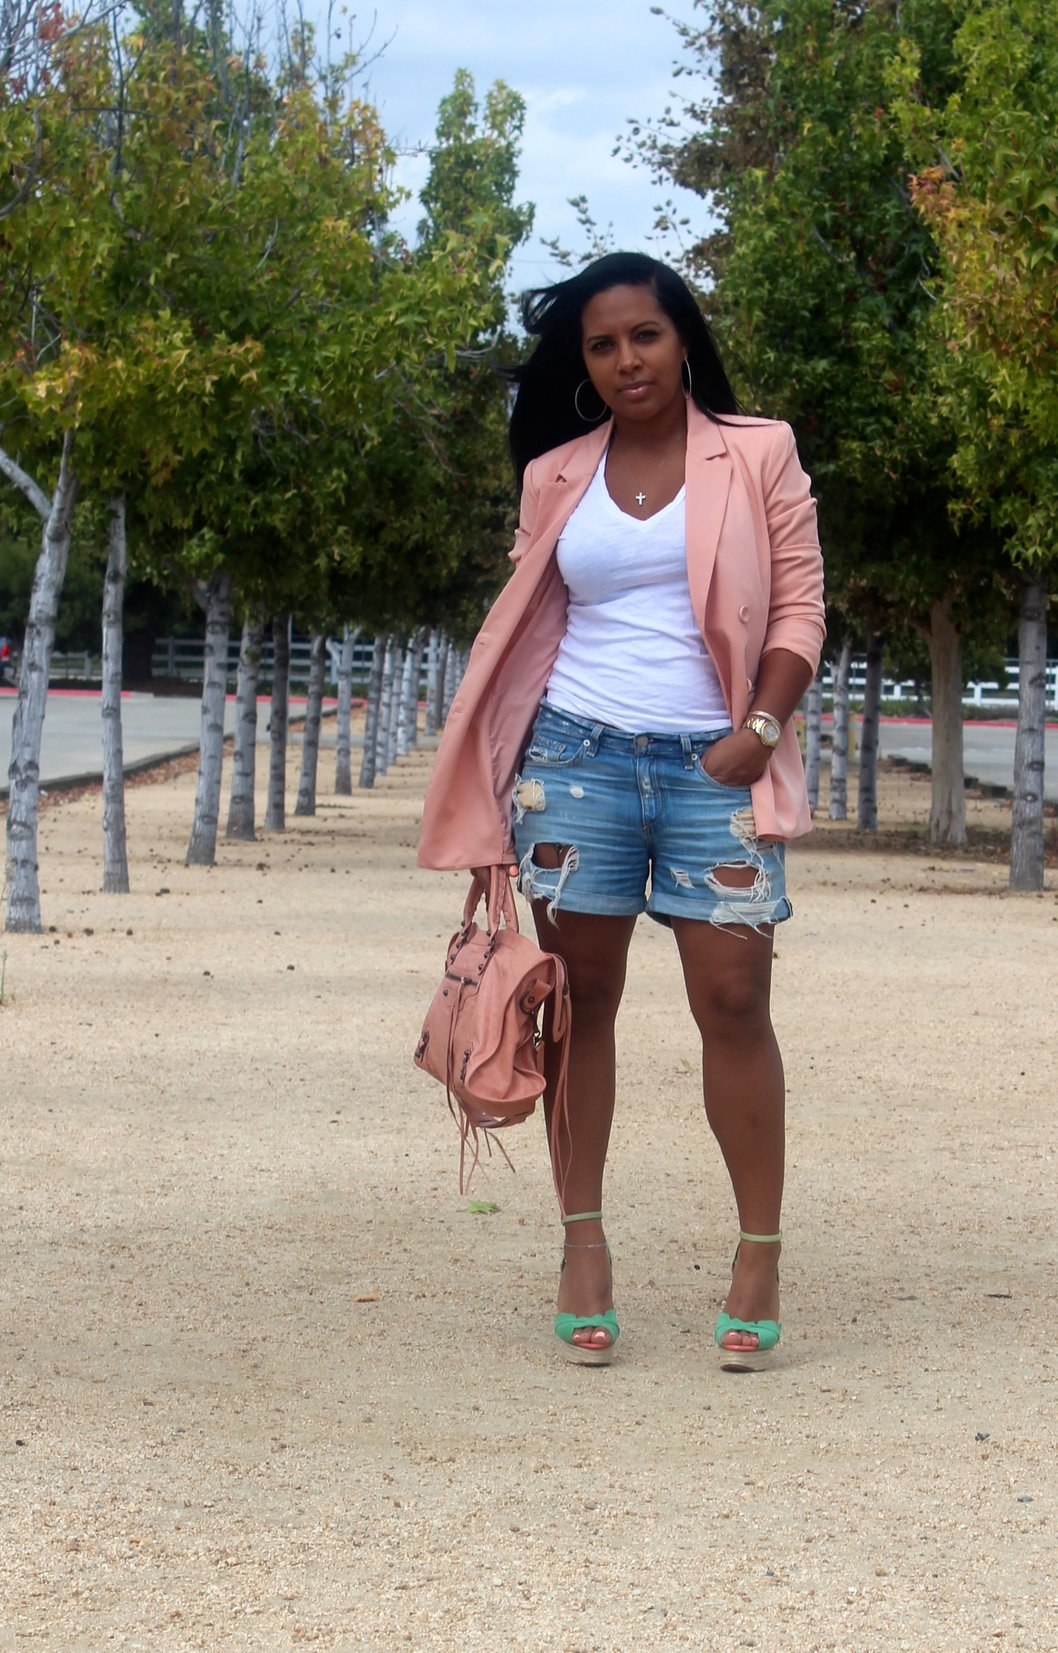 Amazingly sexy Black woman wearing short jeans with open toe sandal pumps shows her ridiculously thick curves.